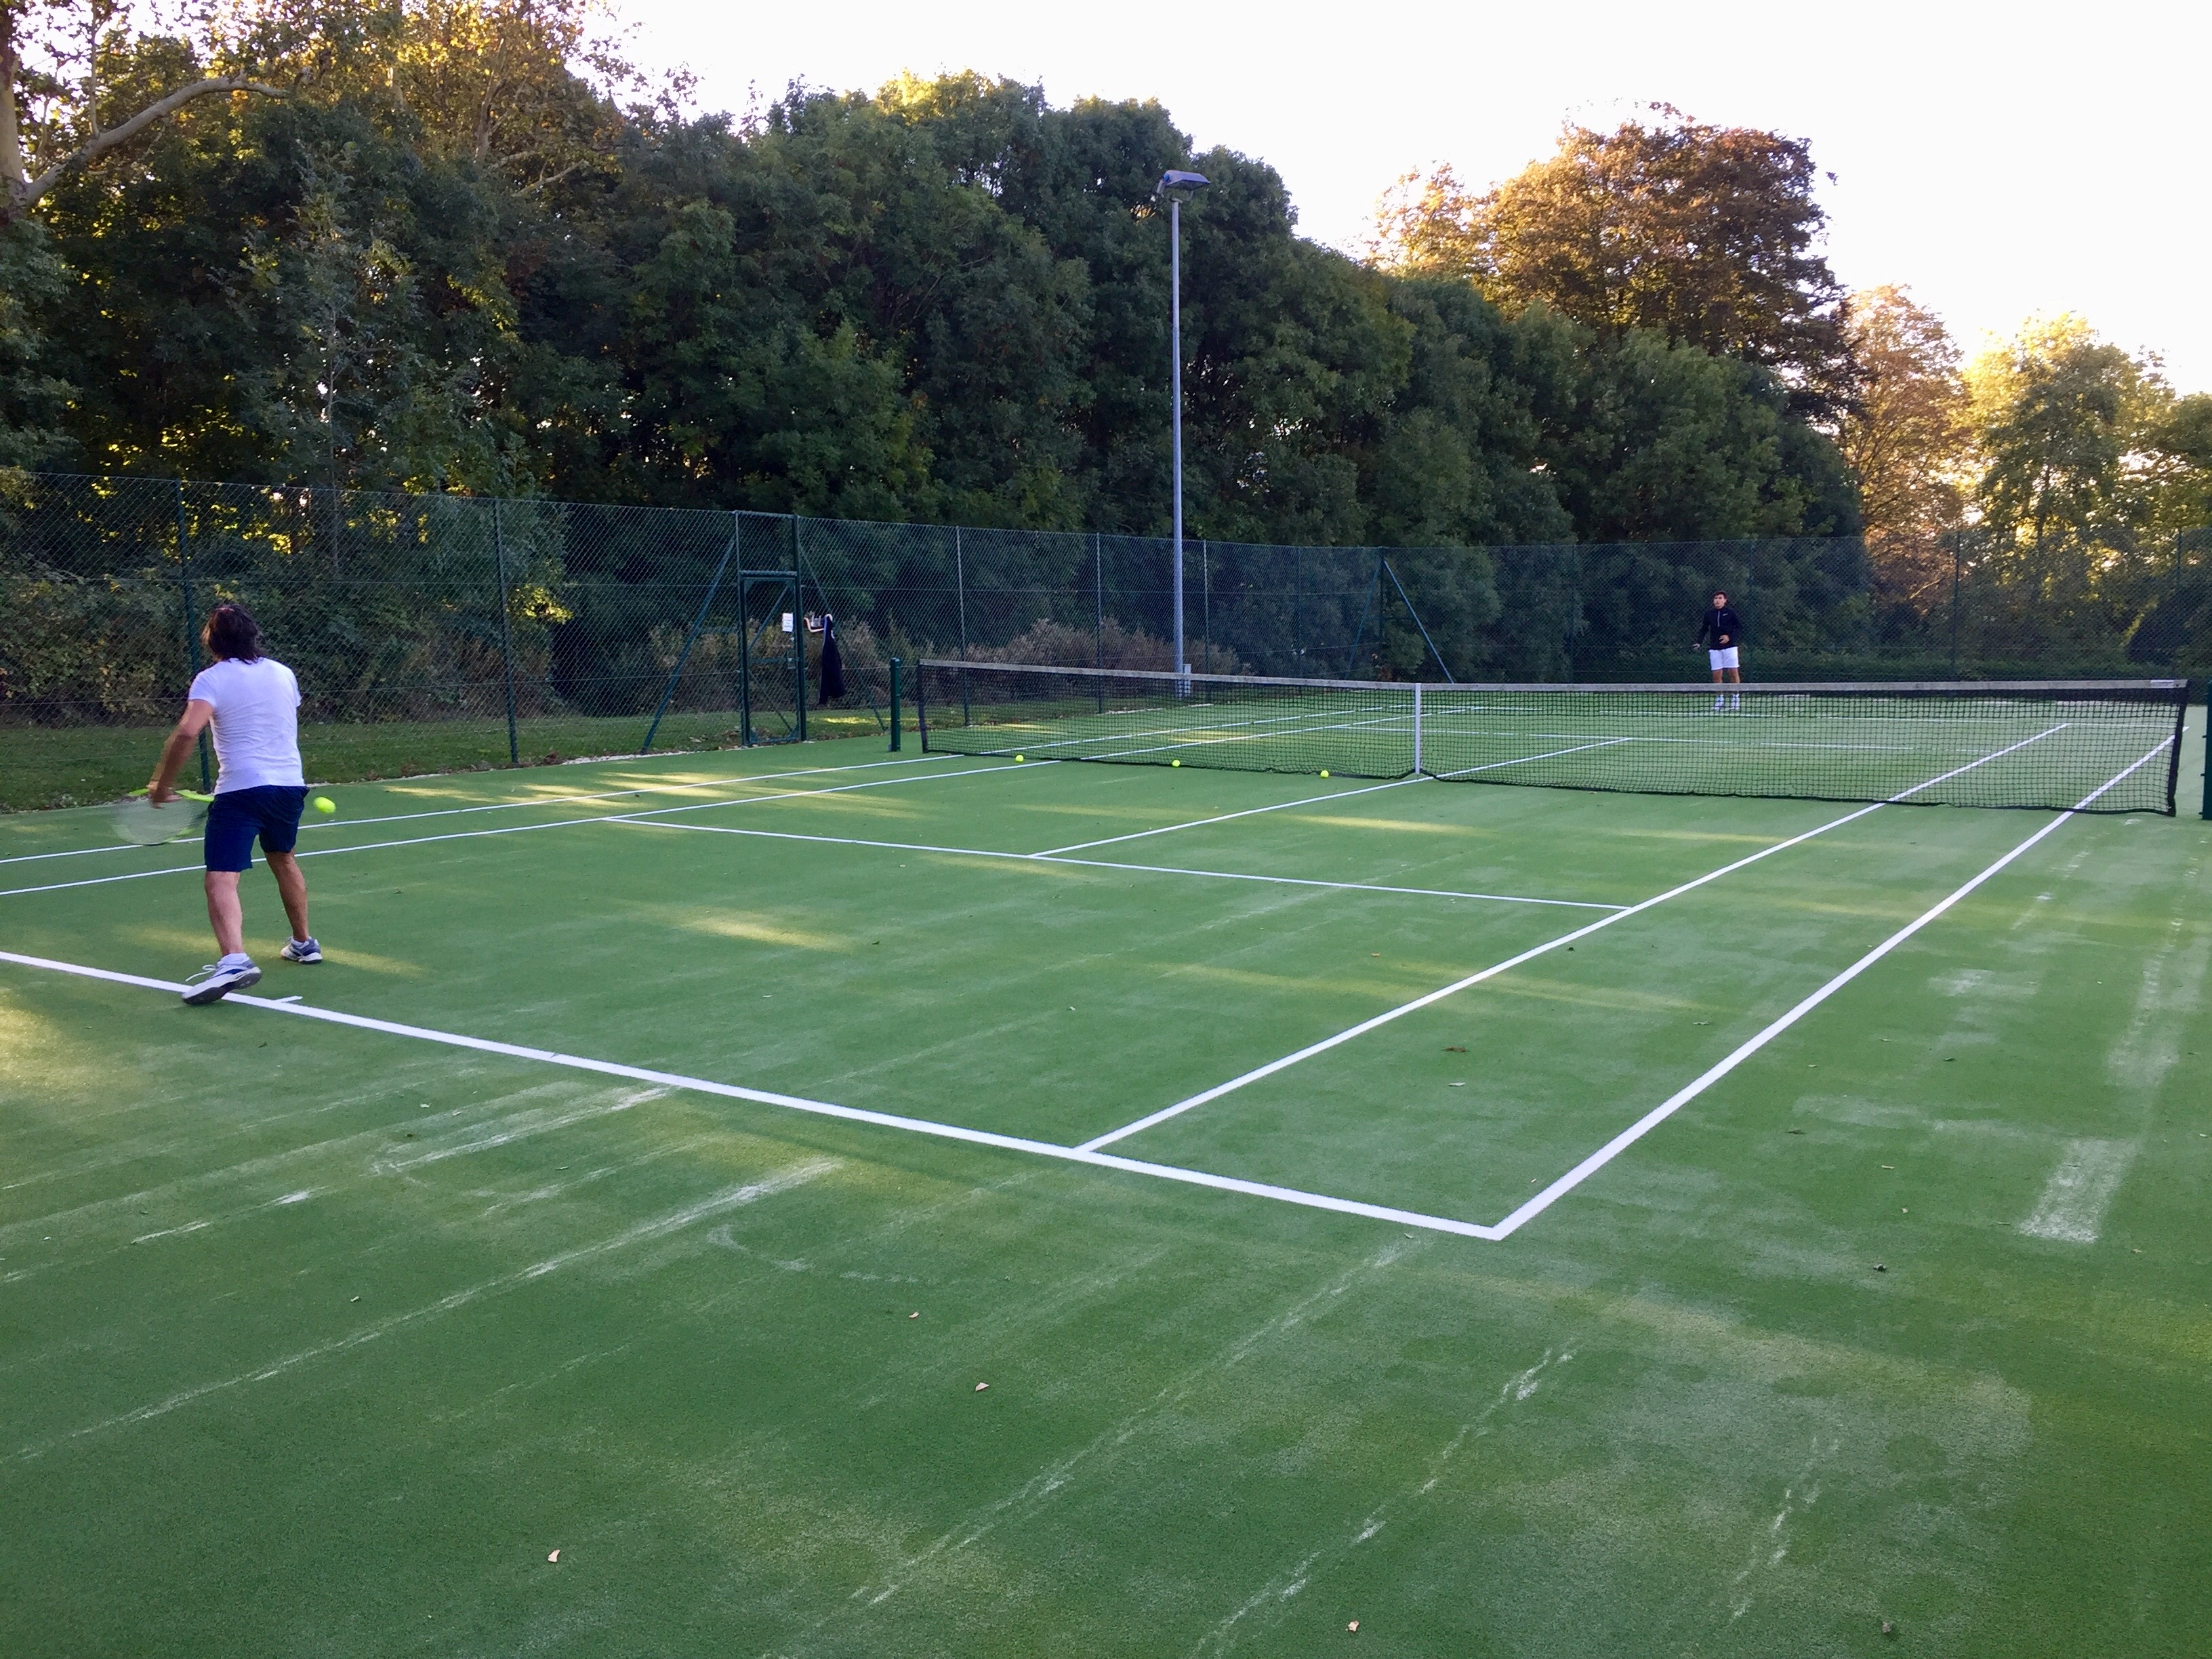 Completing Muswell Hill's new tennis court surfaces